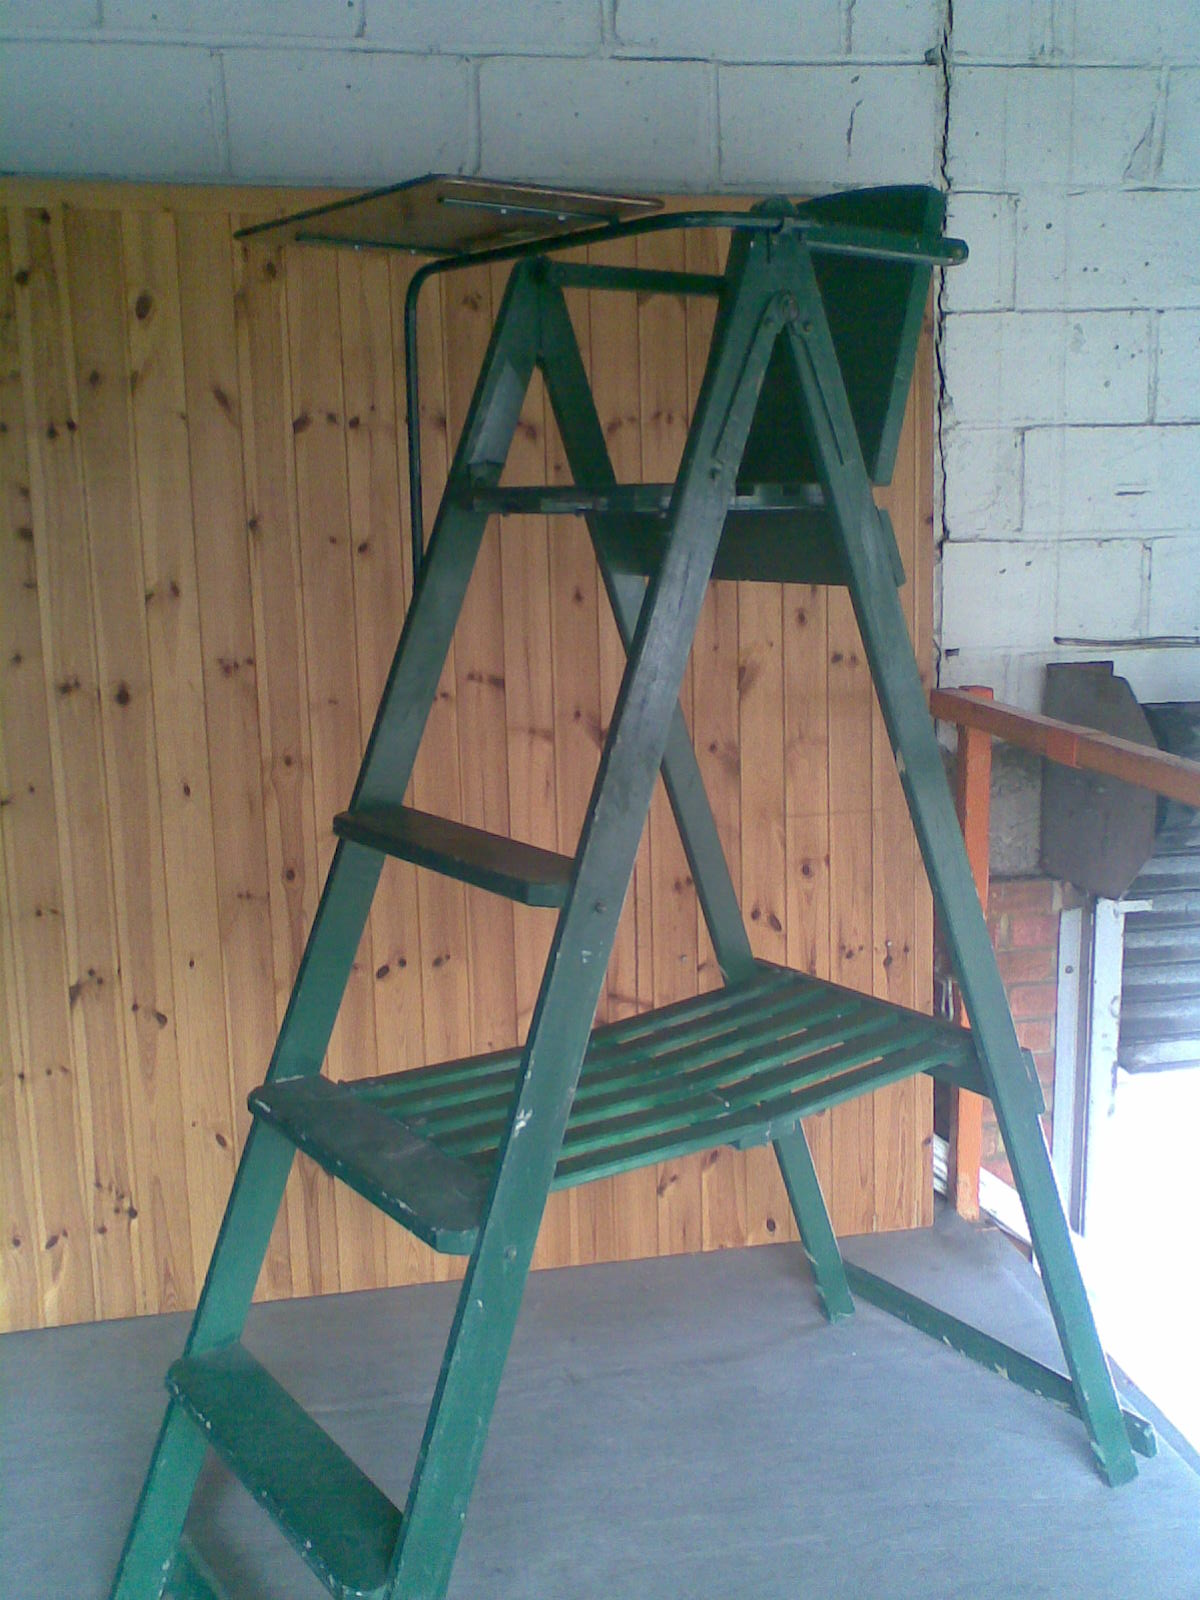 tennis umpire chair hire chairs at lowes umpires green wooden jpg